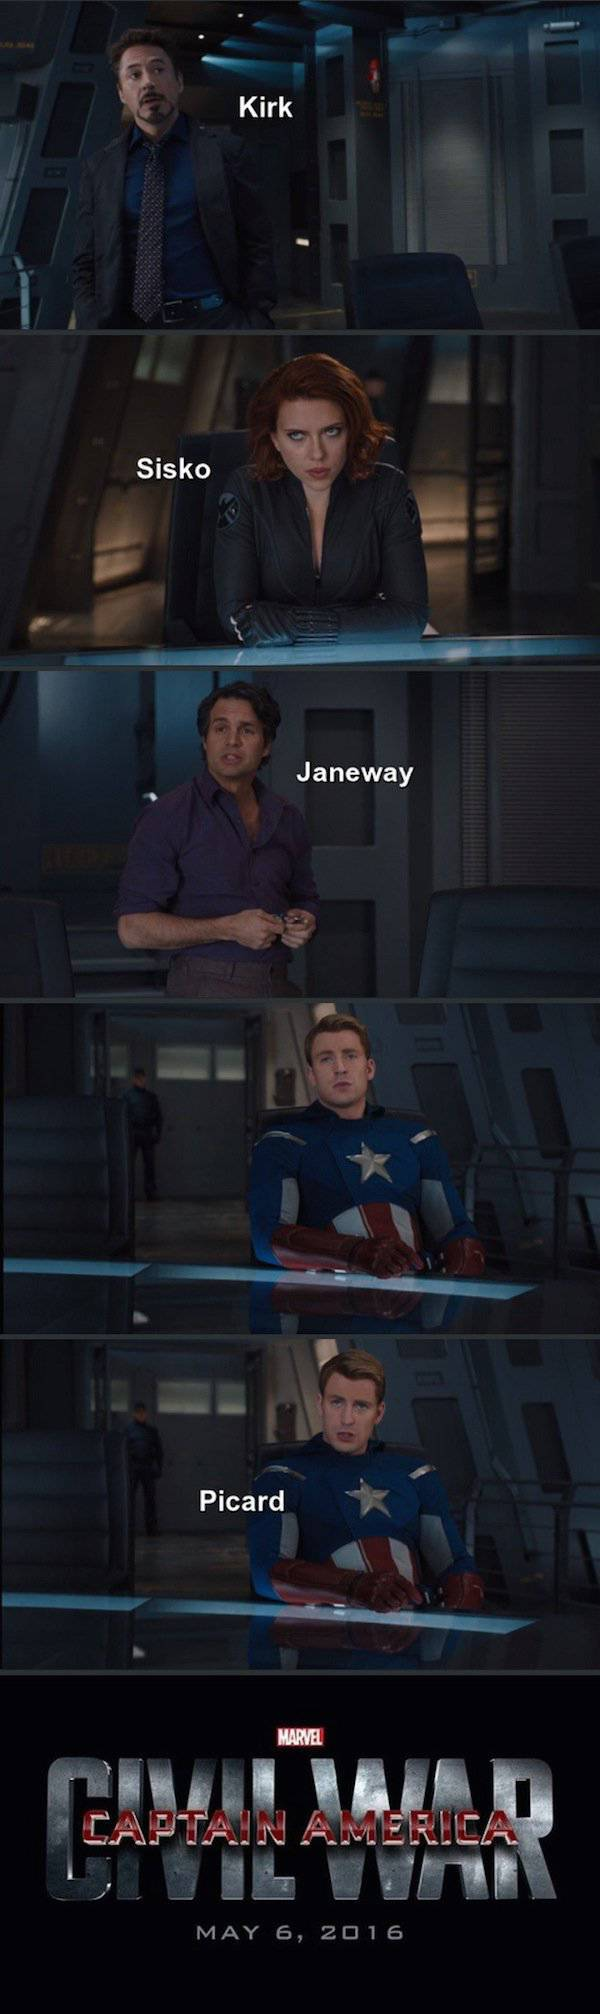 The Truth About Why Iron Man And Captain America Started A Civil War